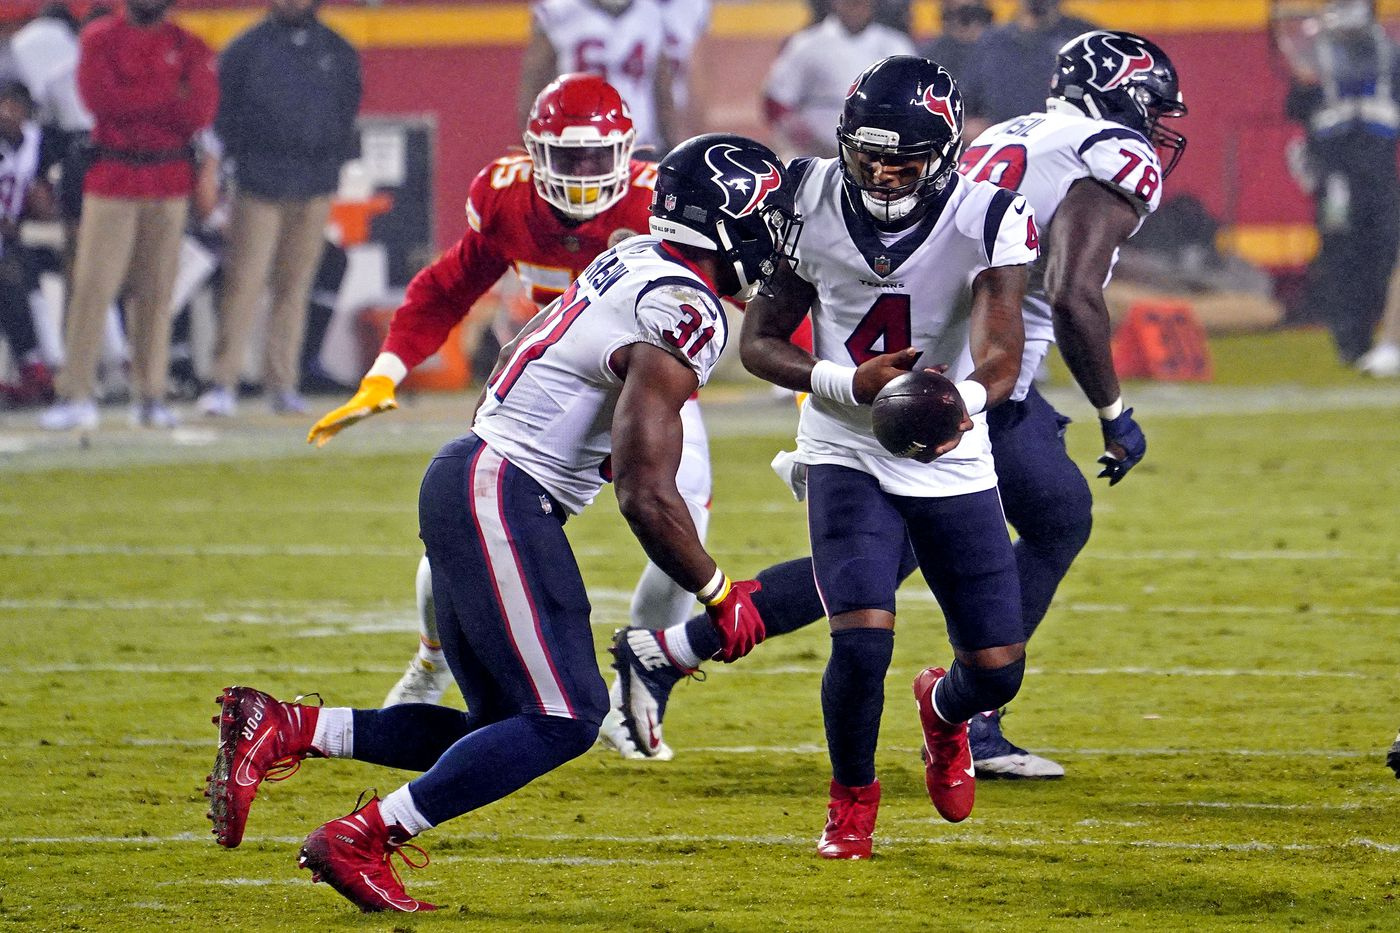 David Johnson Injury Texans Running Back Looked At But Returns In Third Quarter Of Week 1 Contest Draftkings Nation